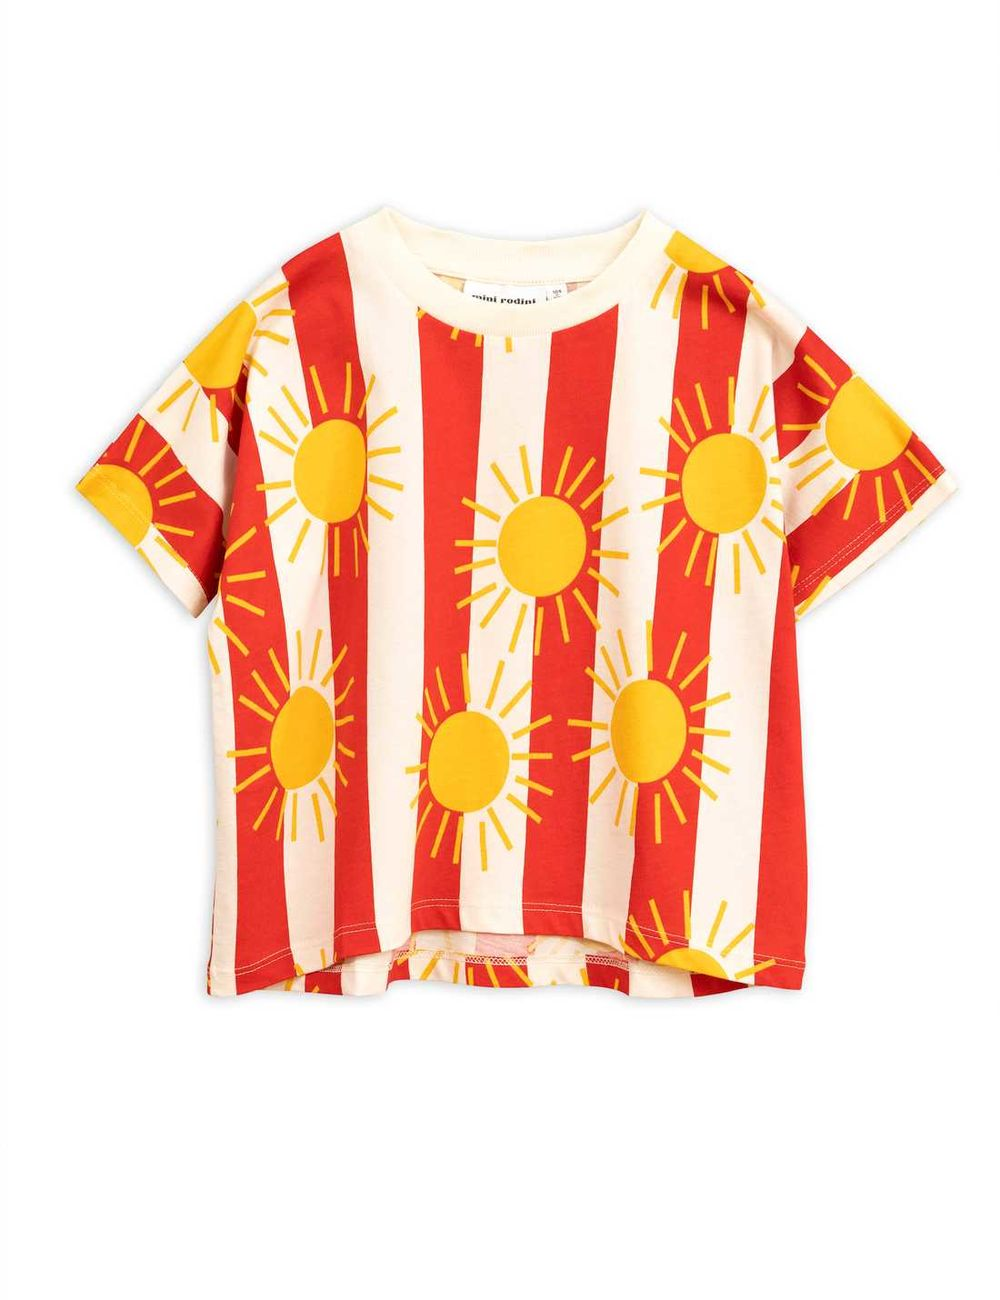 MINI RODINI SUN STRIPE AOP SS TEE, RED